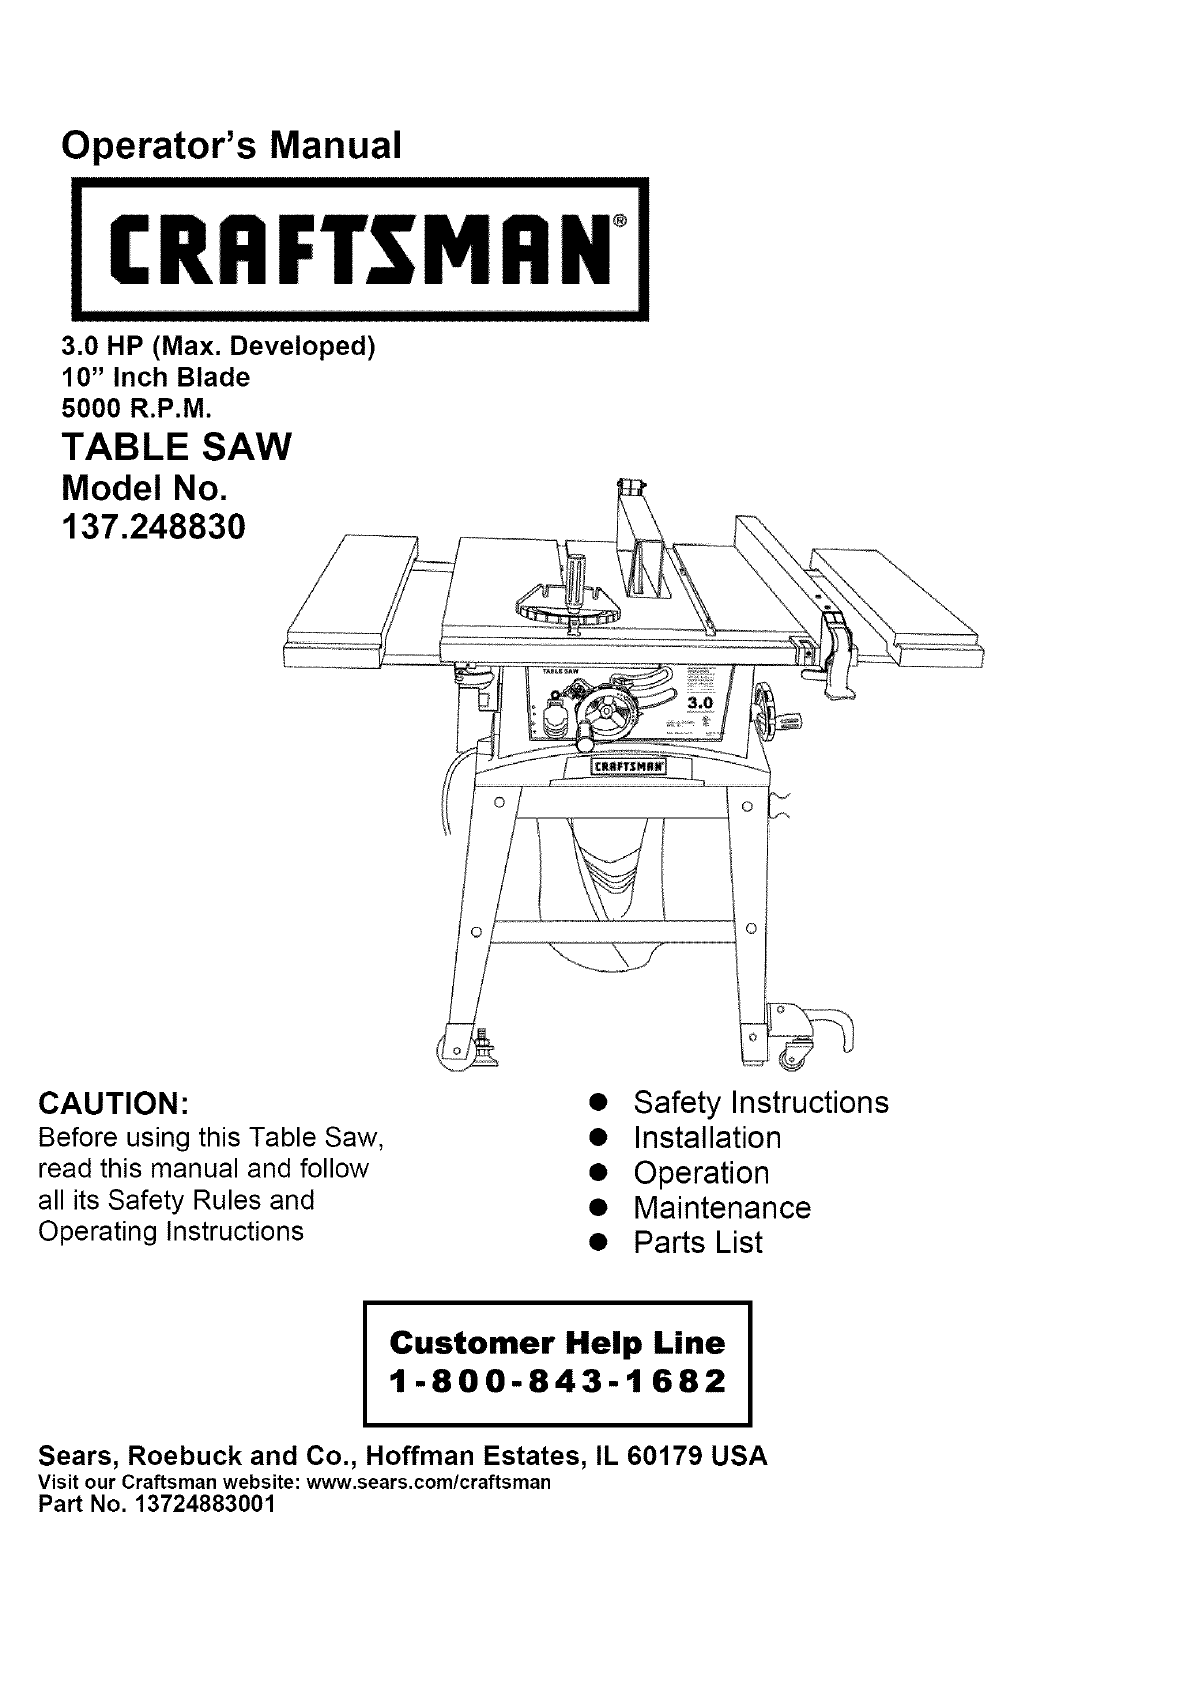 Craftsman saw wiring diagram wiring library craftsman saw 137 248830 user guide manualsonline com rh powertool manualsonline com craftsman radial arm saw wiring diagram craftsman miter saw wiring keyboard keysfo Choice Image